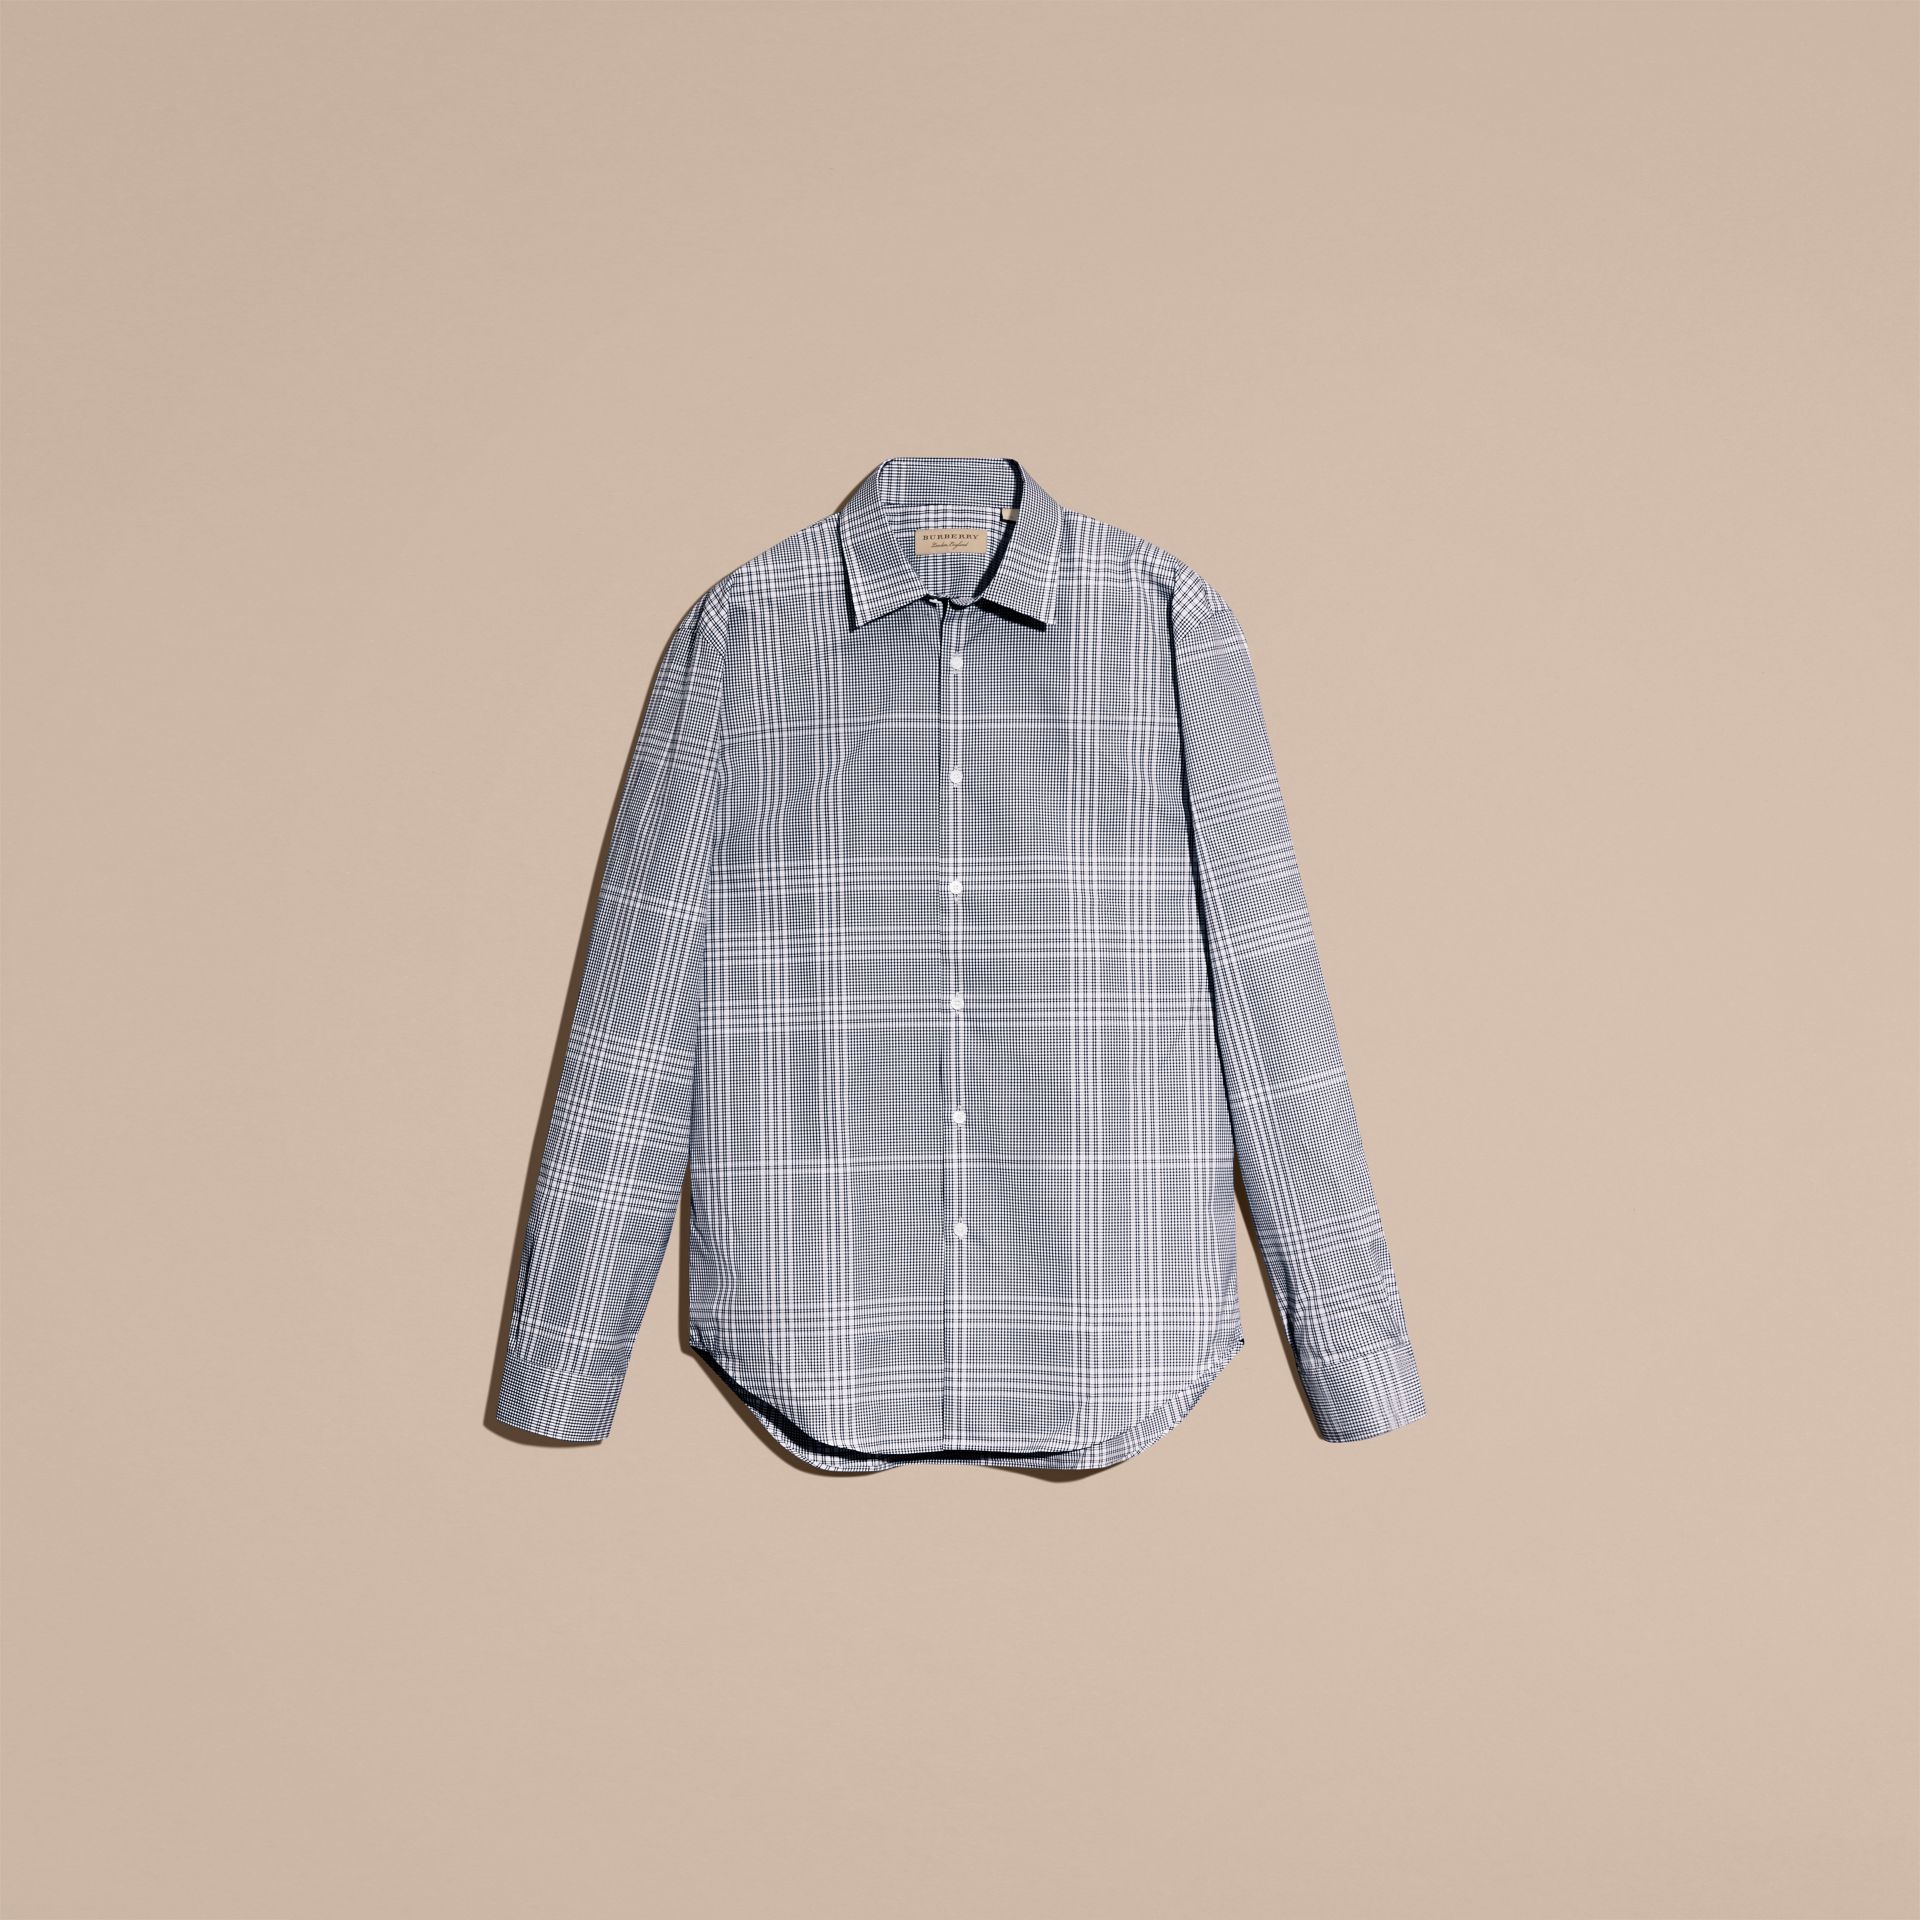 Bright navy Check Cotton Shirt Bright Navy - gallery image 4